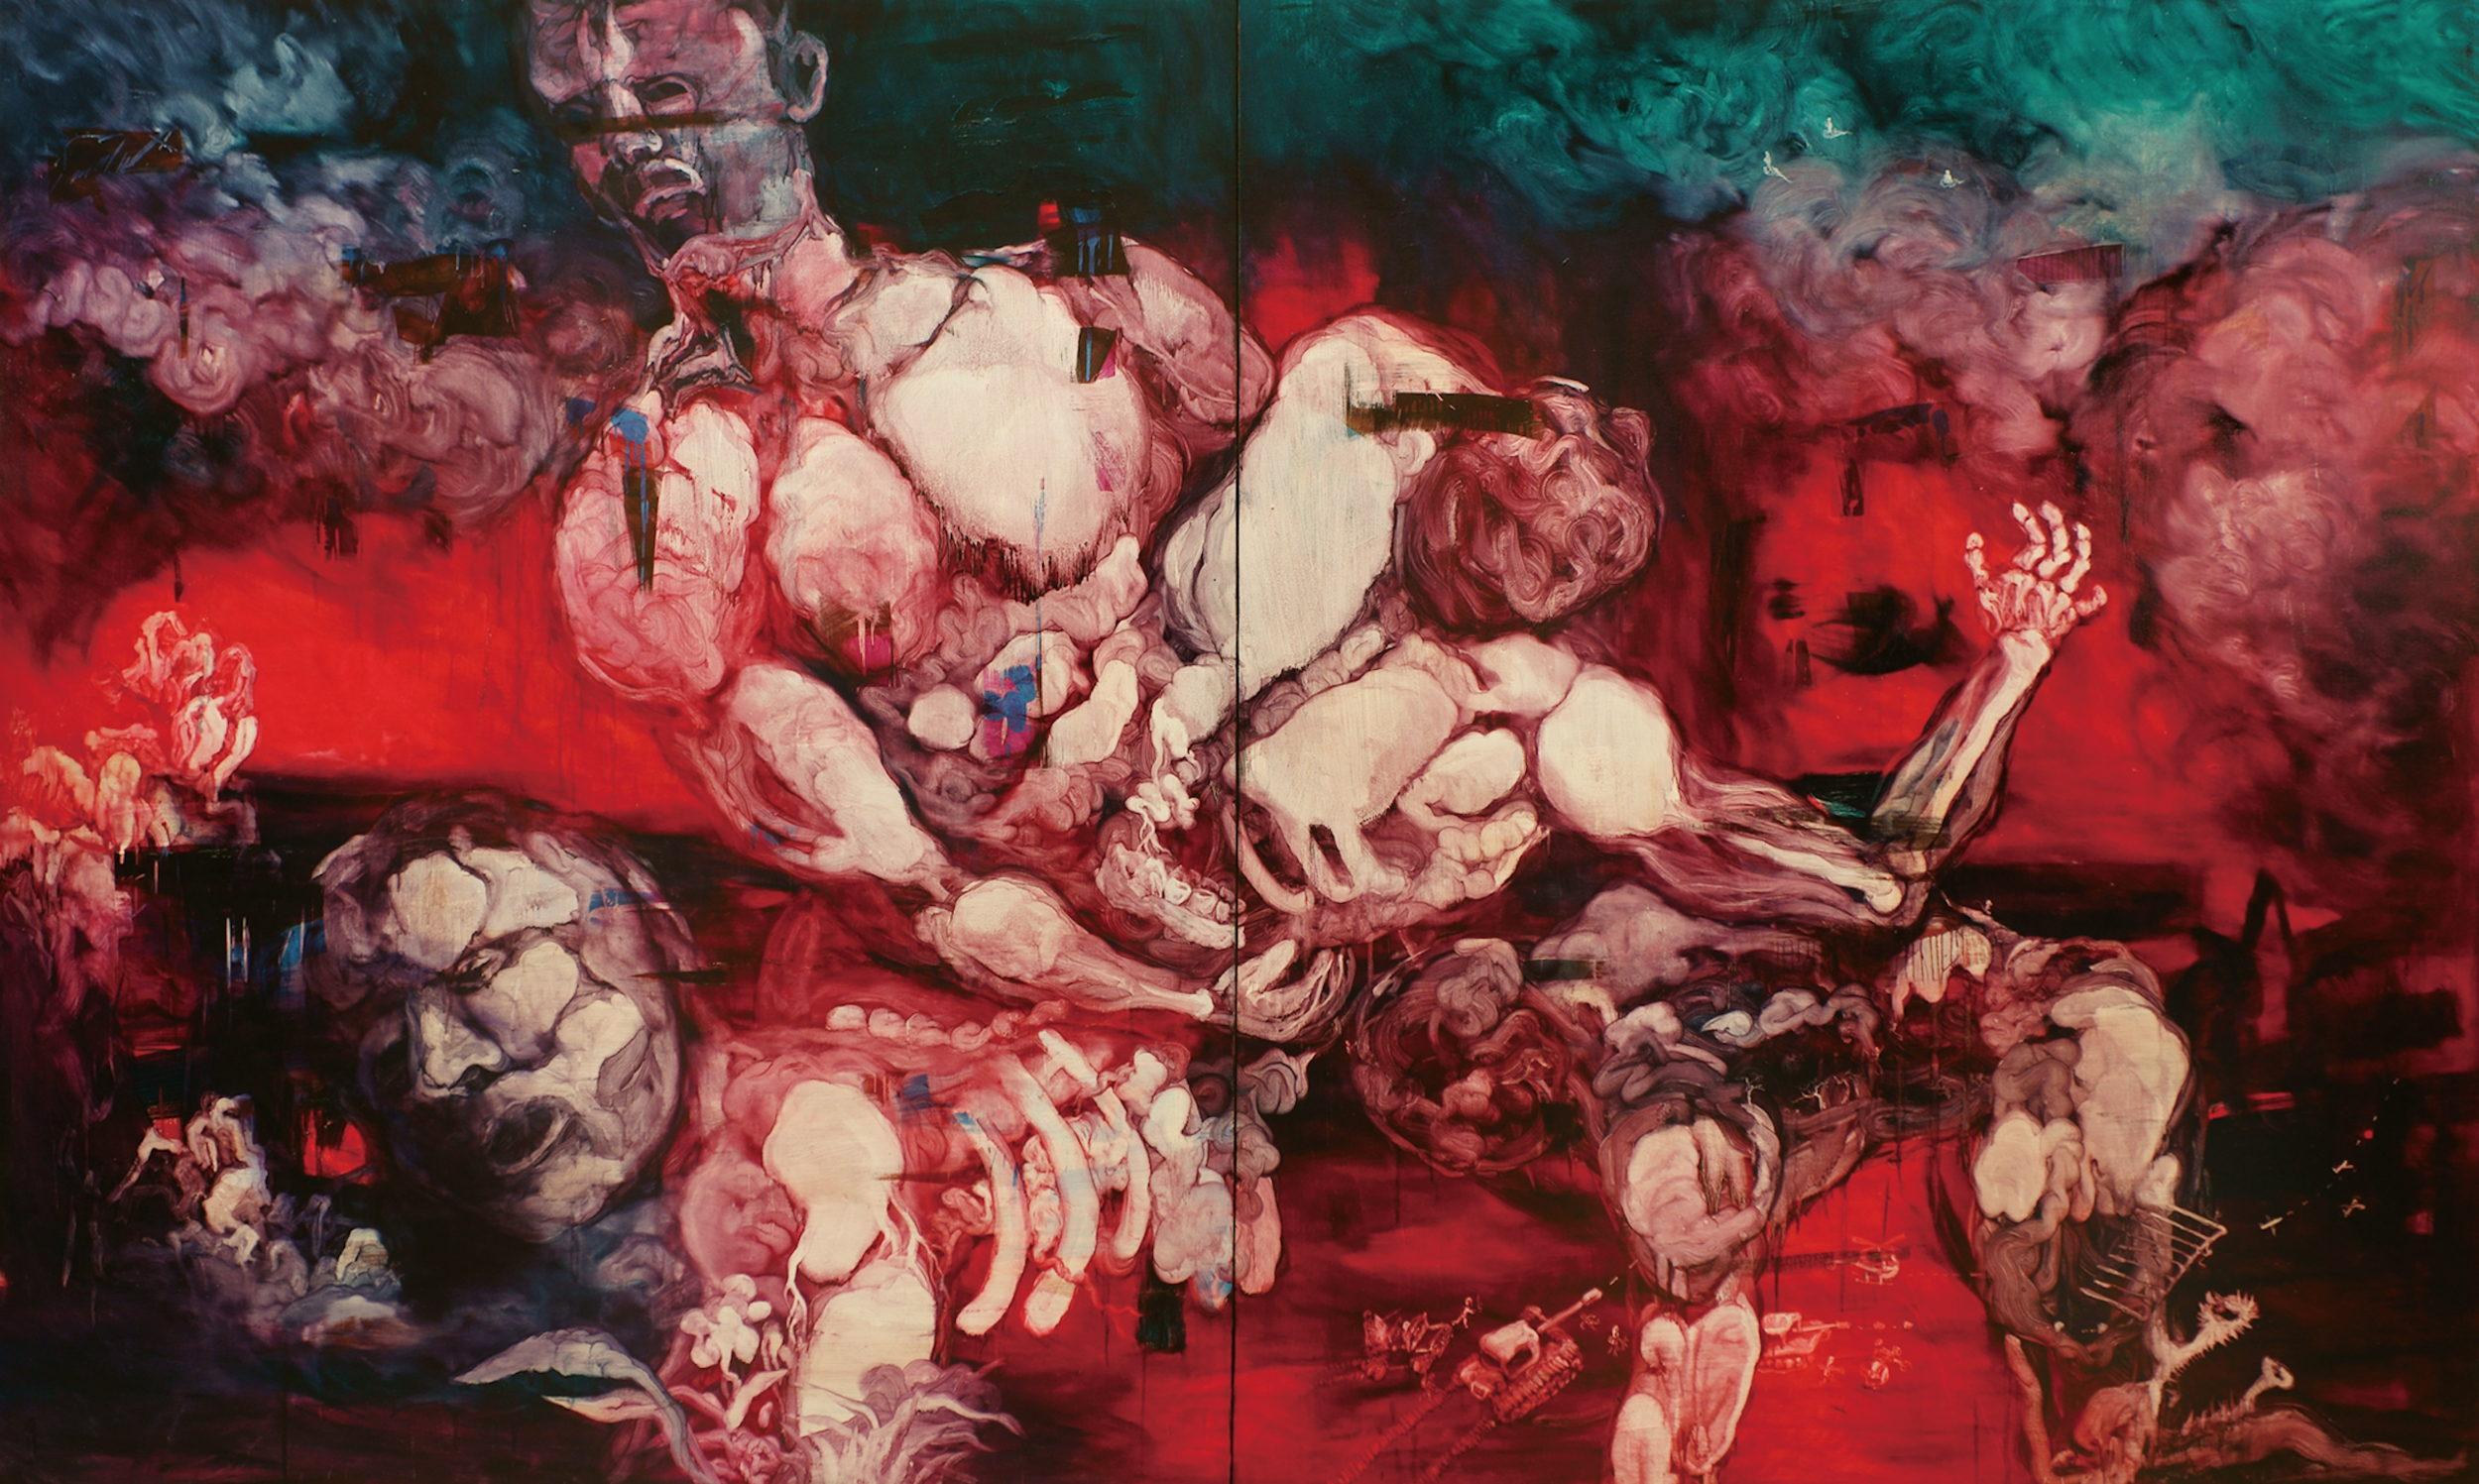 Chang-Ling,  The Re-creation of the Meat Word  from  The Pork Belly Series: Flesh Religion ,  2010,  oil on canvas,   240 x 400 cm. © Courtesy of InSian Gallery